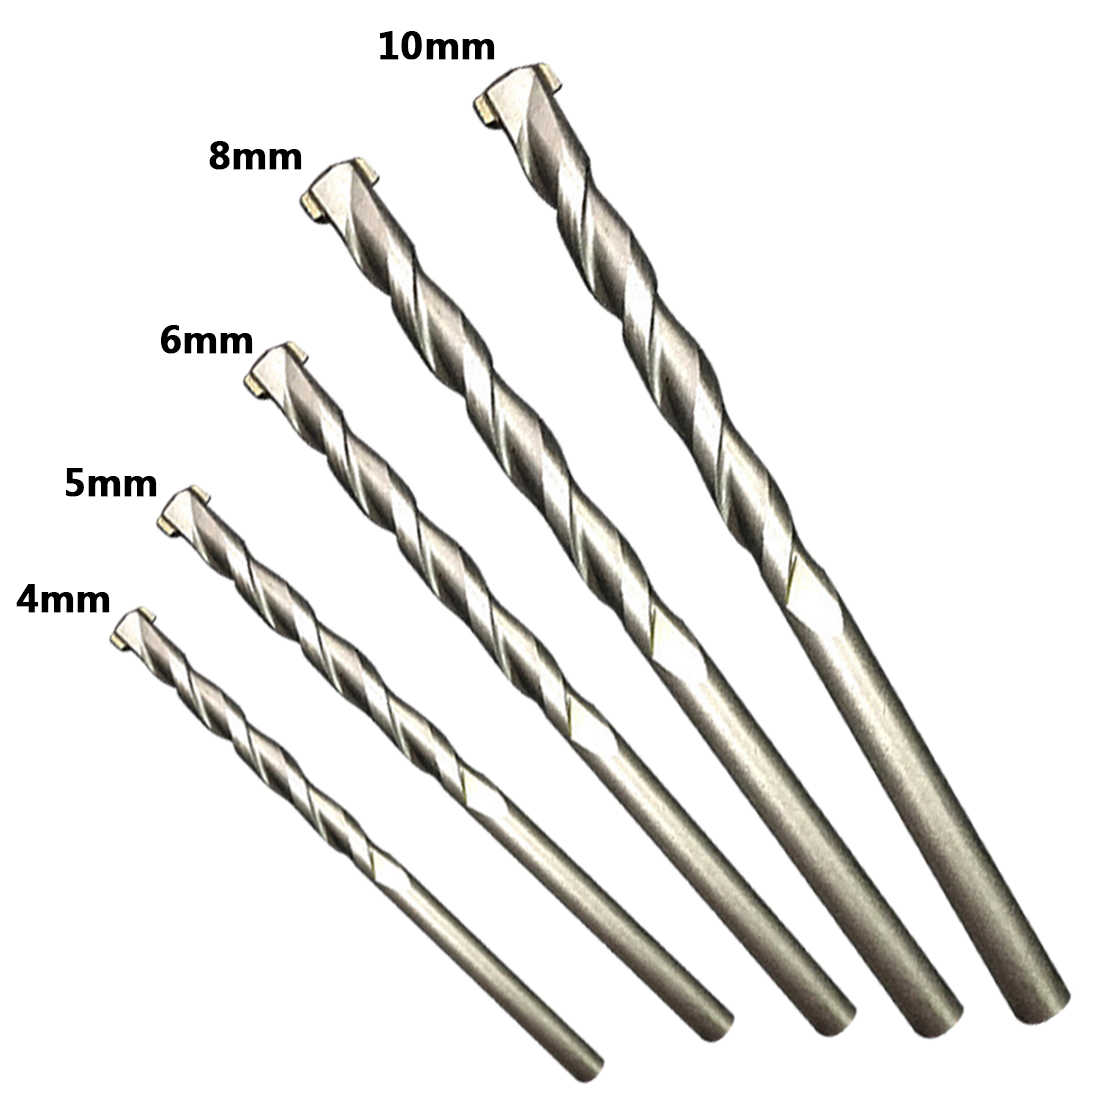 4 5 6 8 10mm Tungsten Carbide Drill Bit Set for Masonry Concrete Drilling Power Tool Accessories Drilling Bits